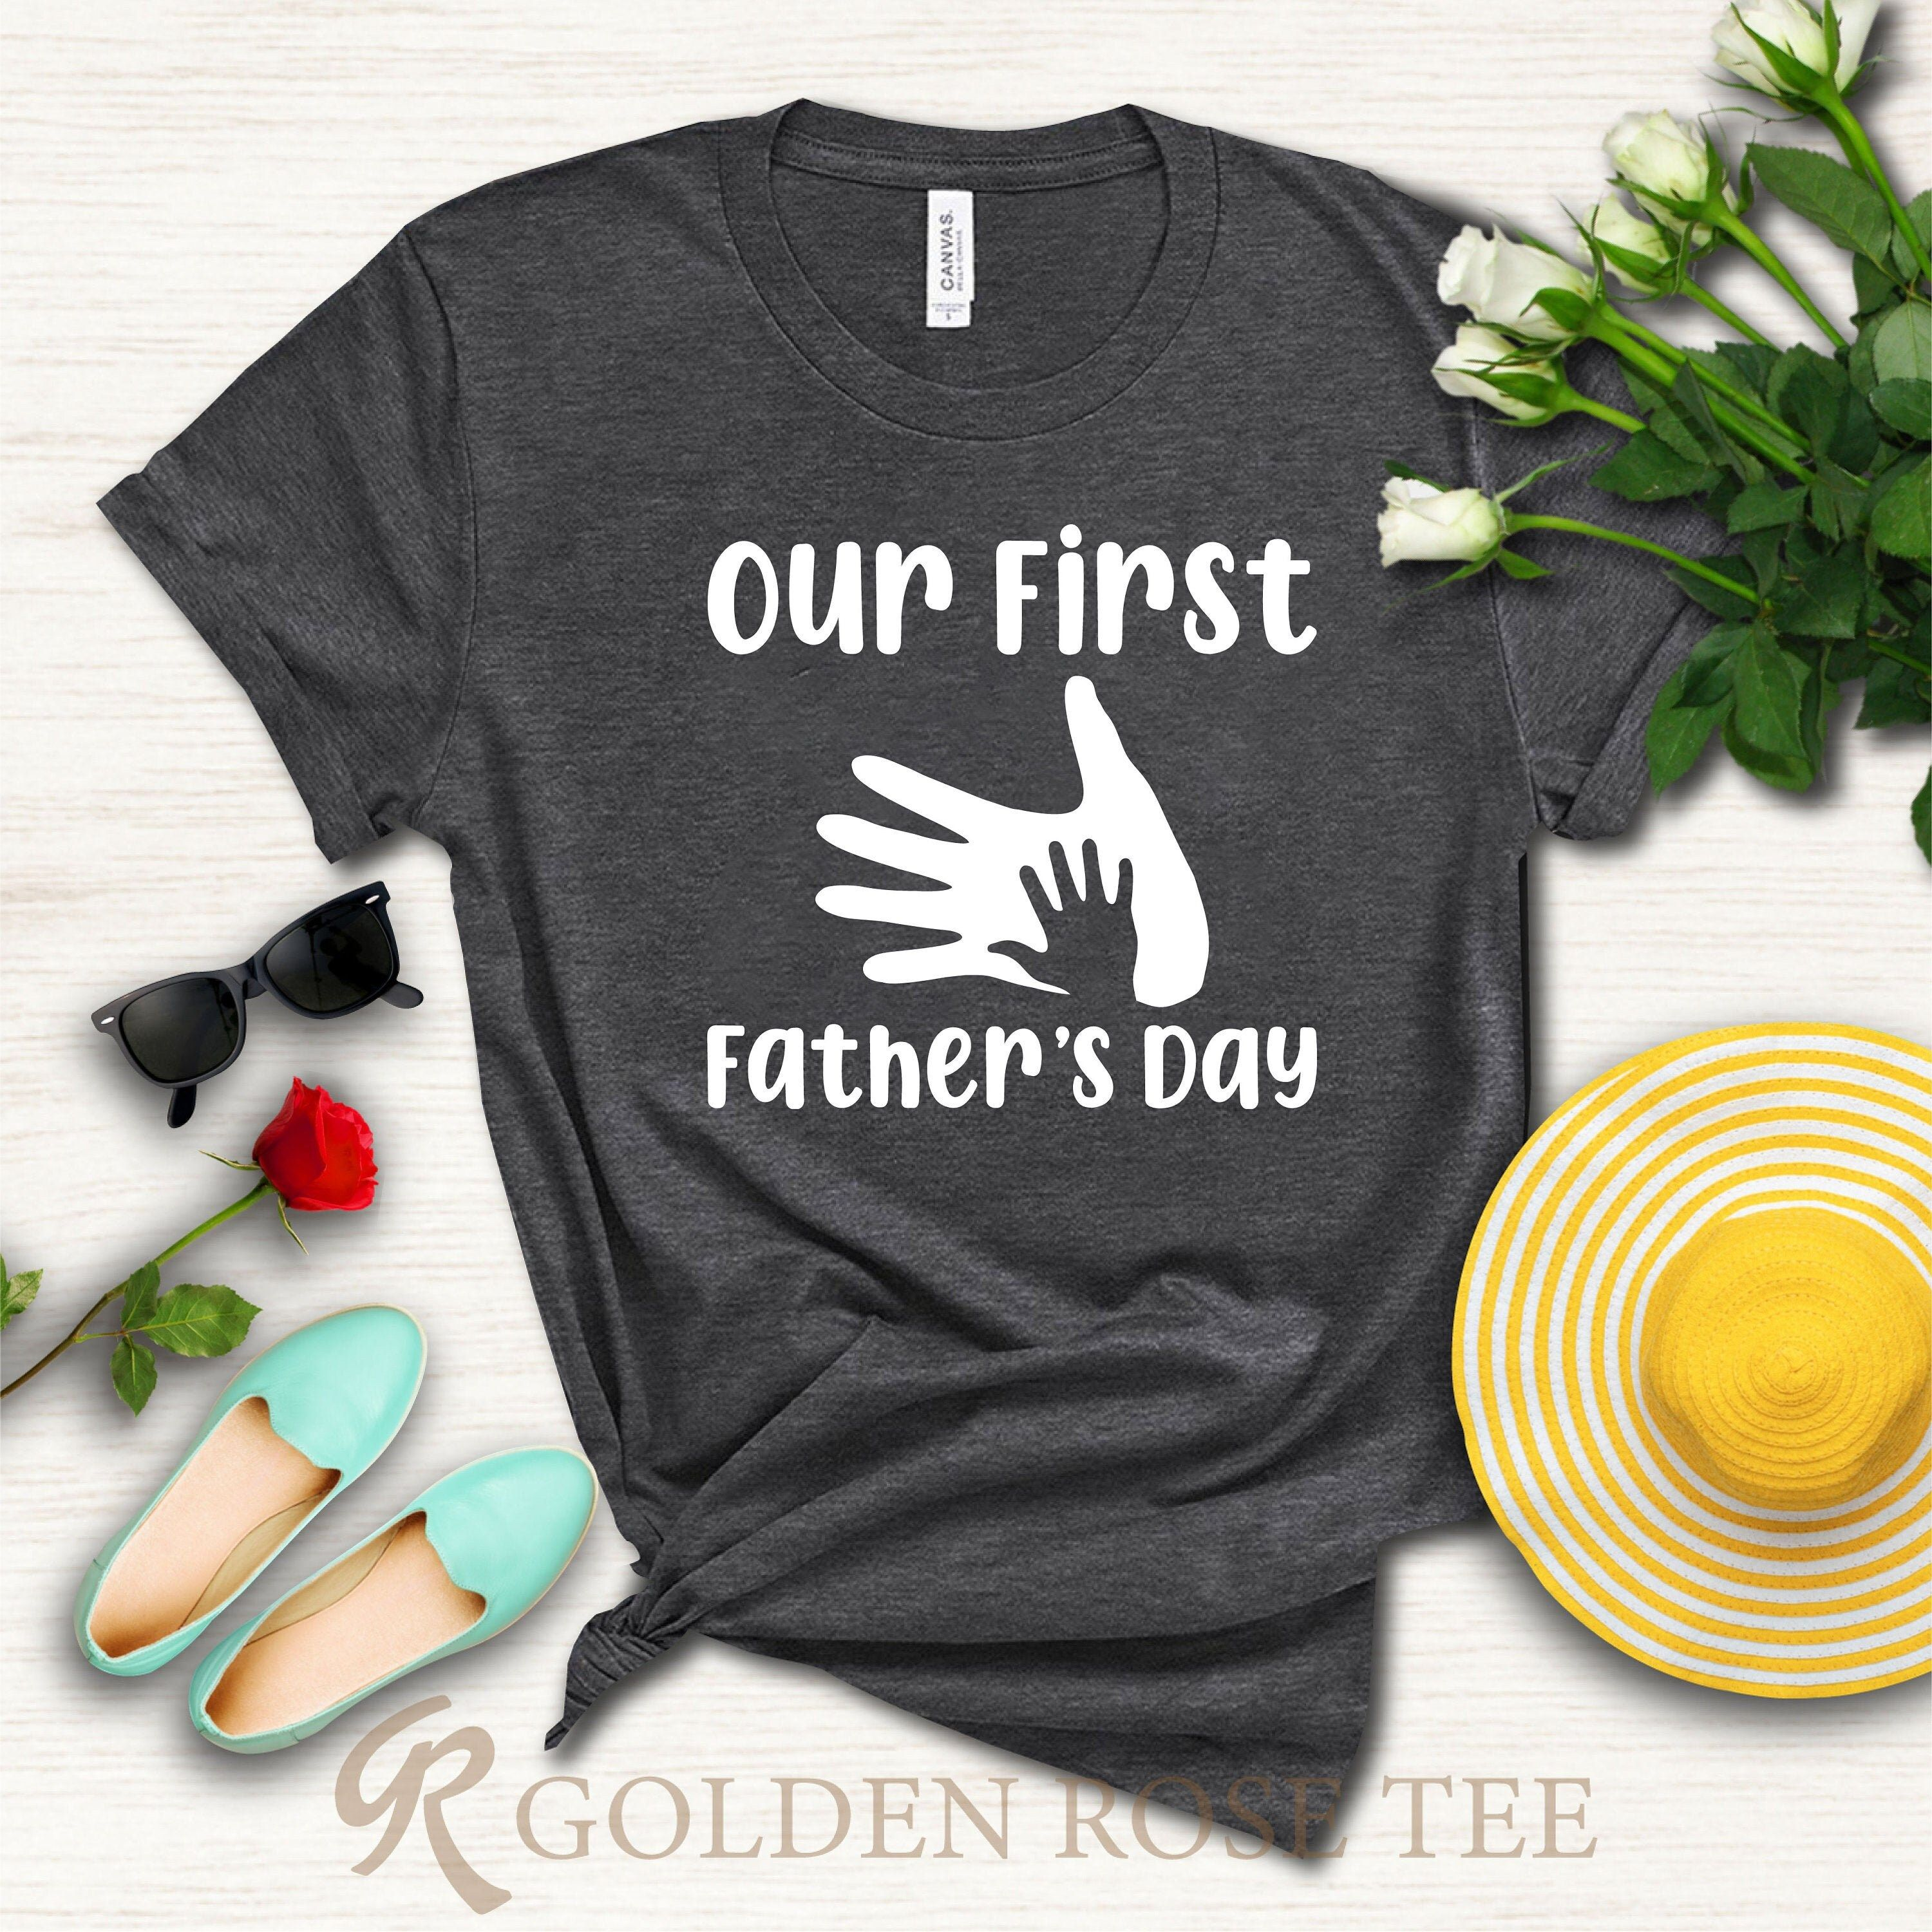 """""""Our First Fathers Day Shirt, Funny Dad Shirt, Dad Shirt, Dad Gift, Fathers Day Shirt, Shirt For Father, My First Father Day Shirt, Dad shirt When ordering in the baby category, please specify which ones you choose 3-6, 6-12, 12-18 or 18-24 Month. ---How To Order --- 1-) Please, check and review all photos 2-) Choose your t-shirt size and color *Different styles of shirts may have different shades of same color choice due to different manufacturer brands. *For this reason, we recommend you to ma"""